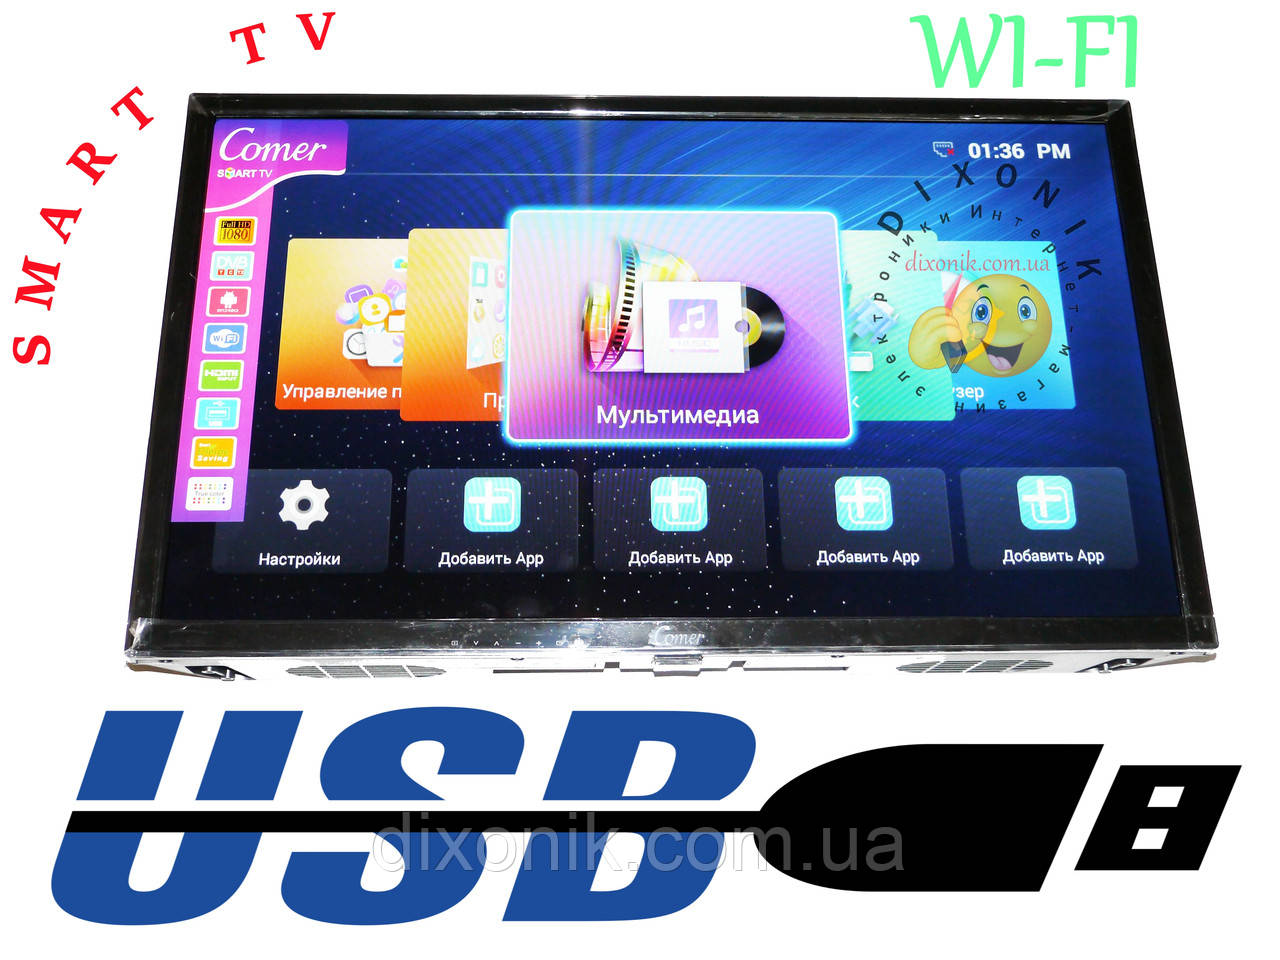 """Телевизор Comer LED 24"""" Smart TV+WiFi+T2, Android 4.4+HDMI"""